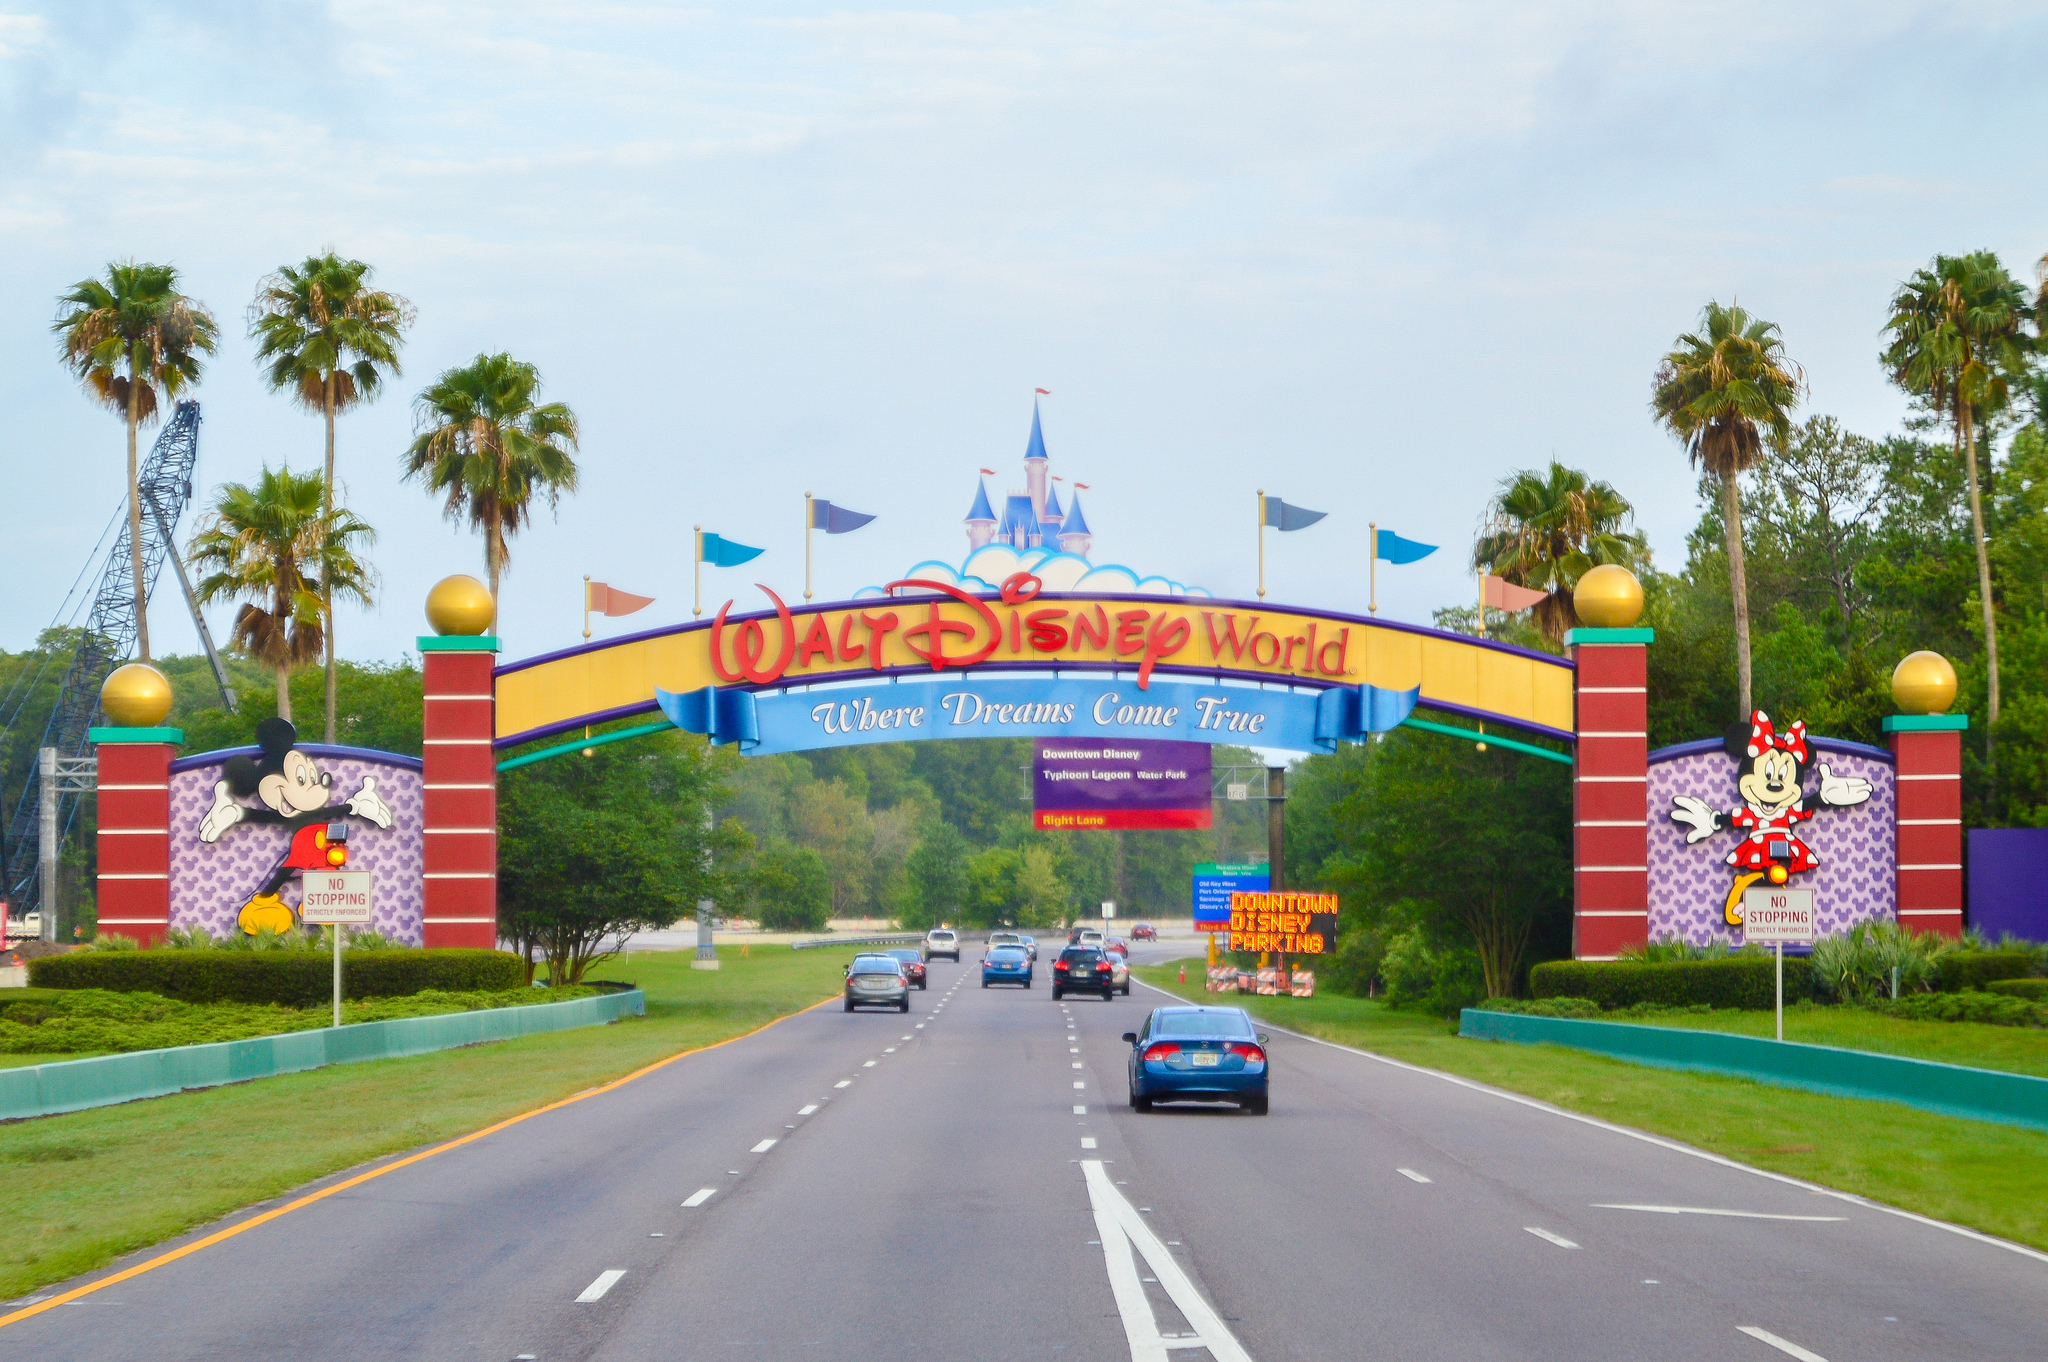 disney world 3 Stay in a spacious villa near disney when you reserve this 3-day/2-night stay + 5 disney tickets package book your disney world 3-day package and save.